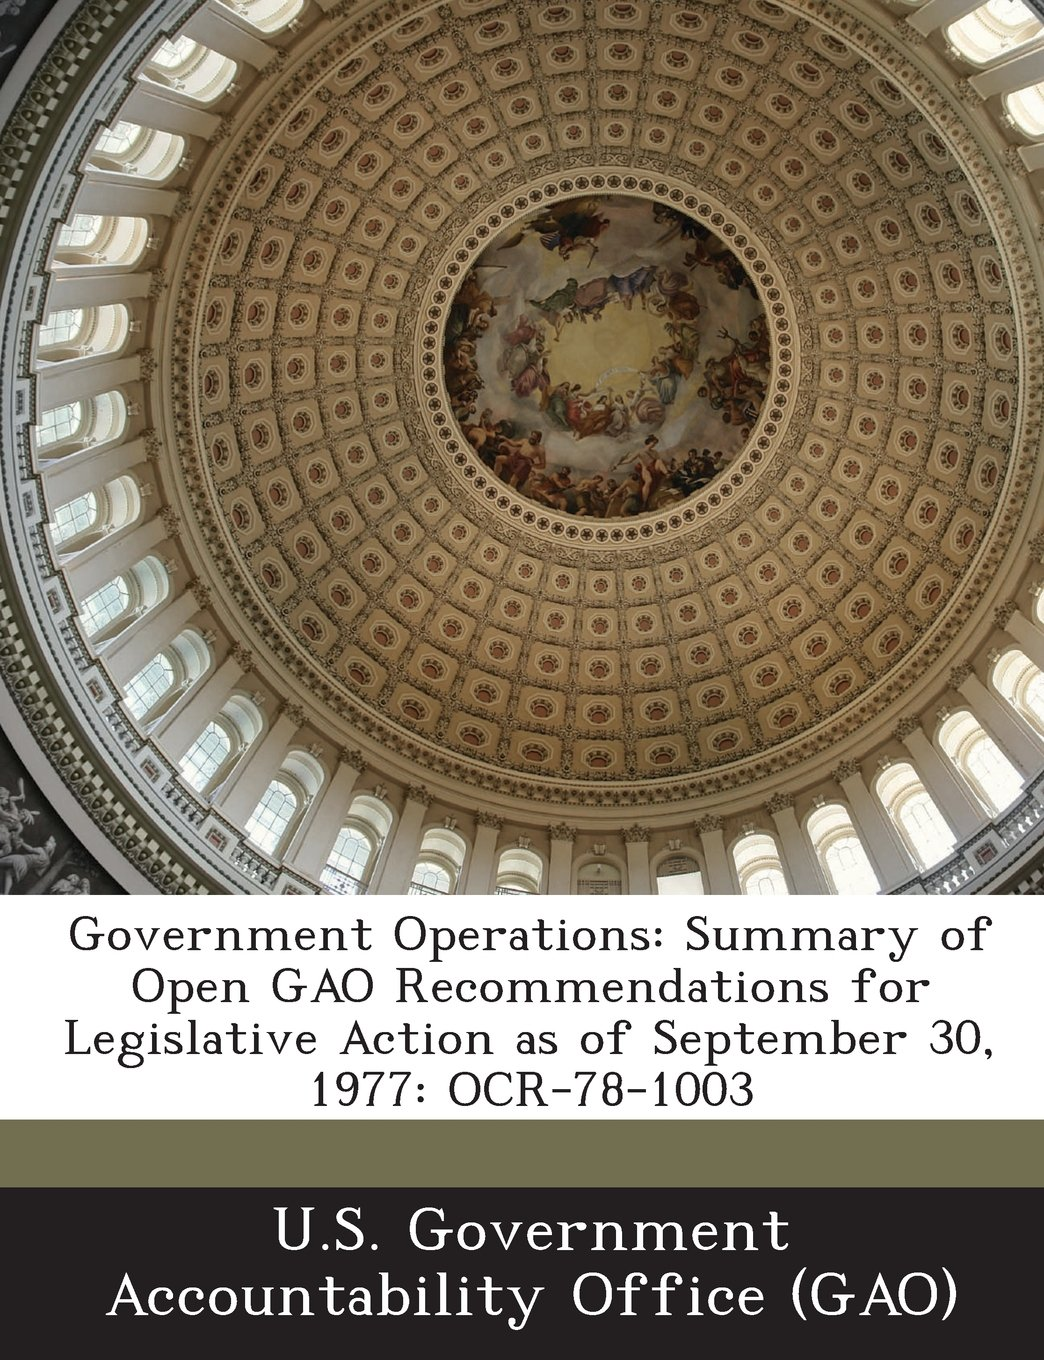 Read Online Government Operations: Summary of Open Gao Recommendations for Legislative Action as of September 30, 1977: OCR-78-1003 pdf